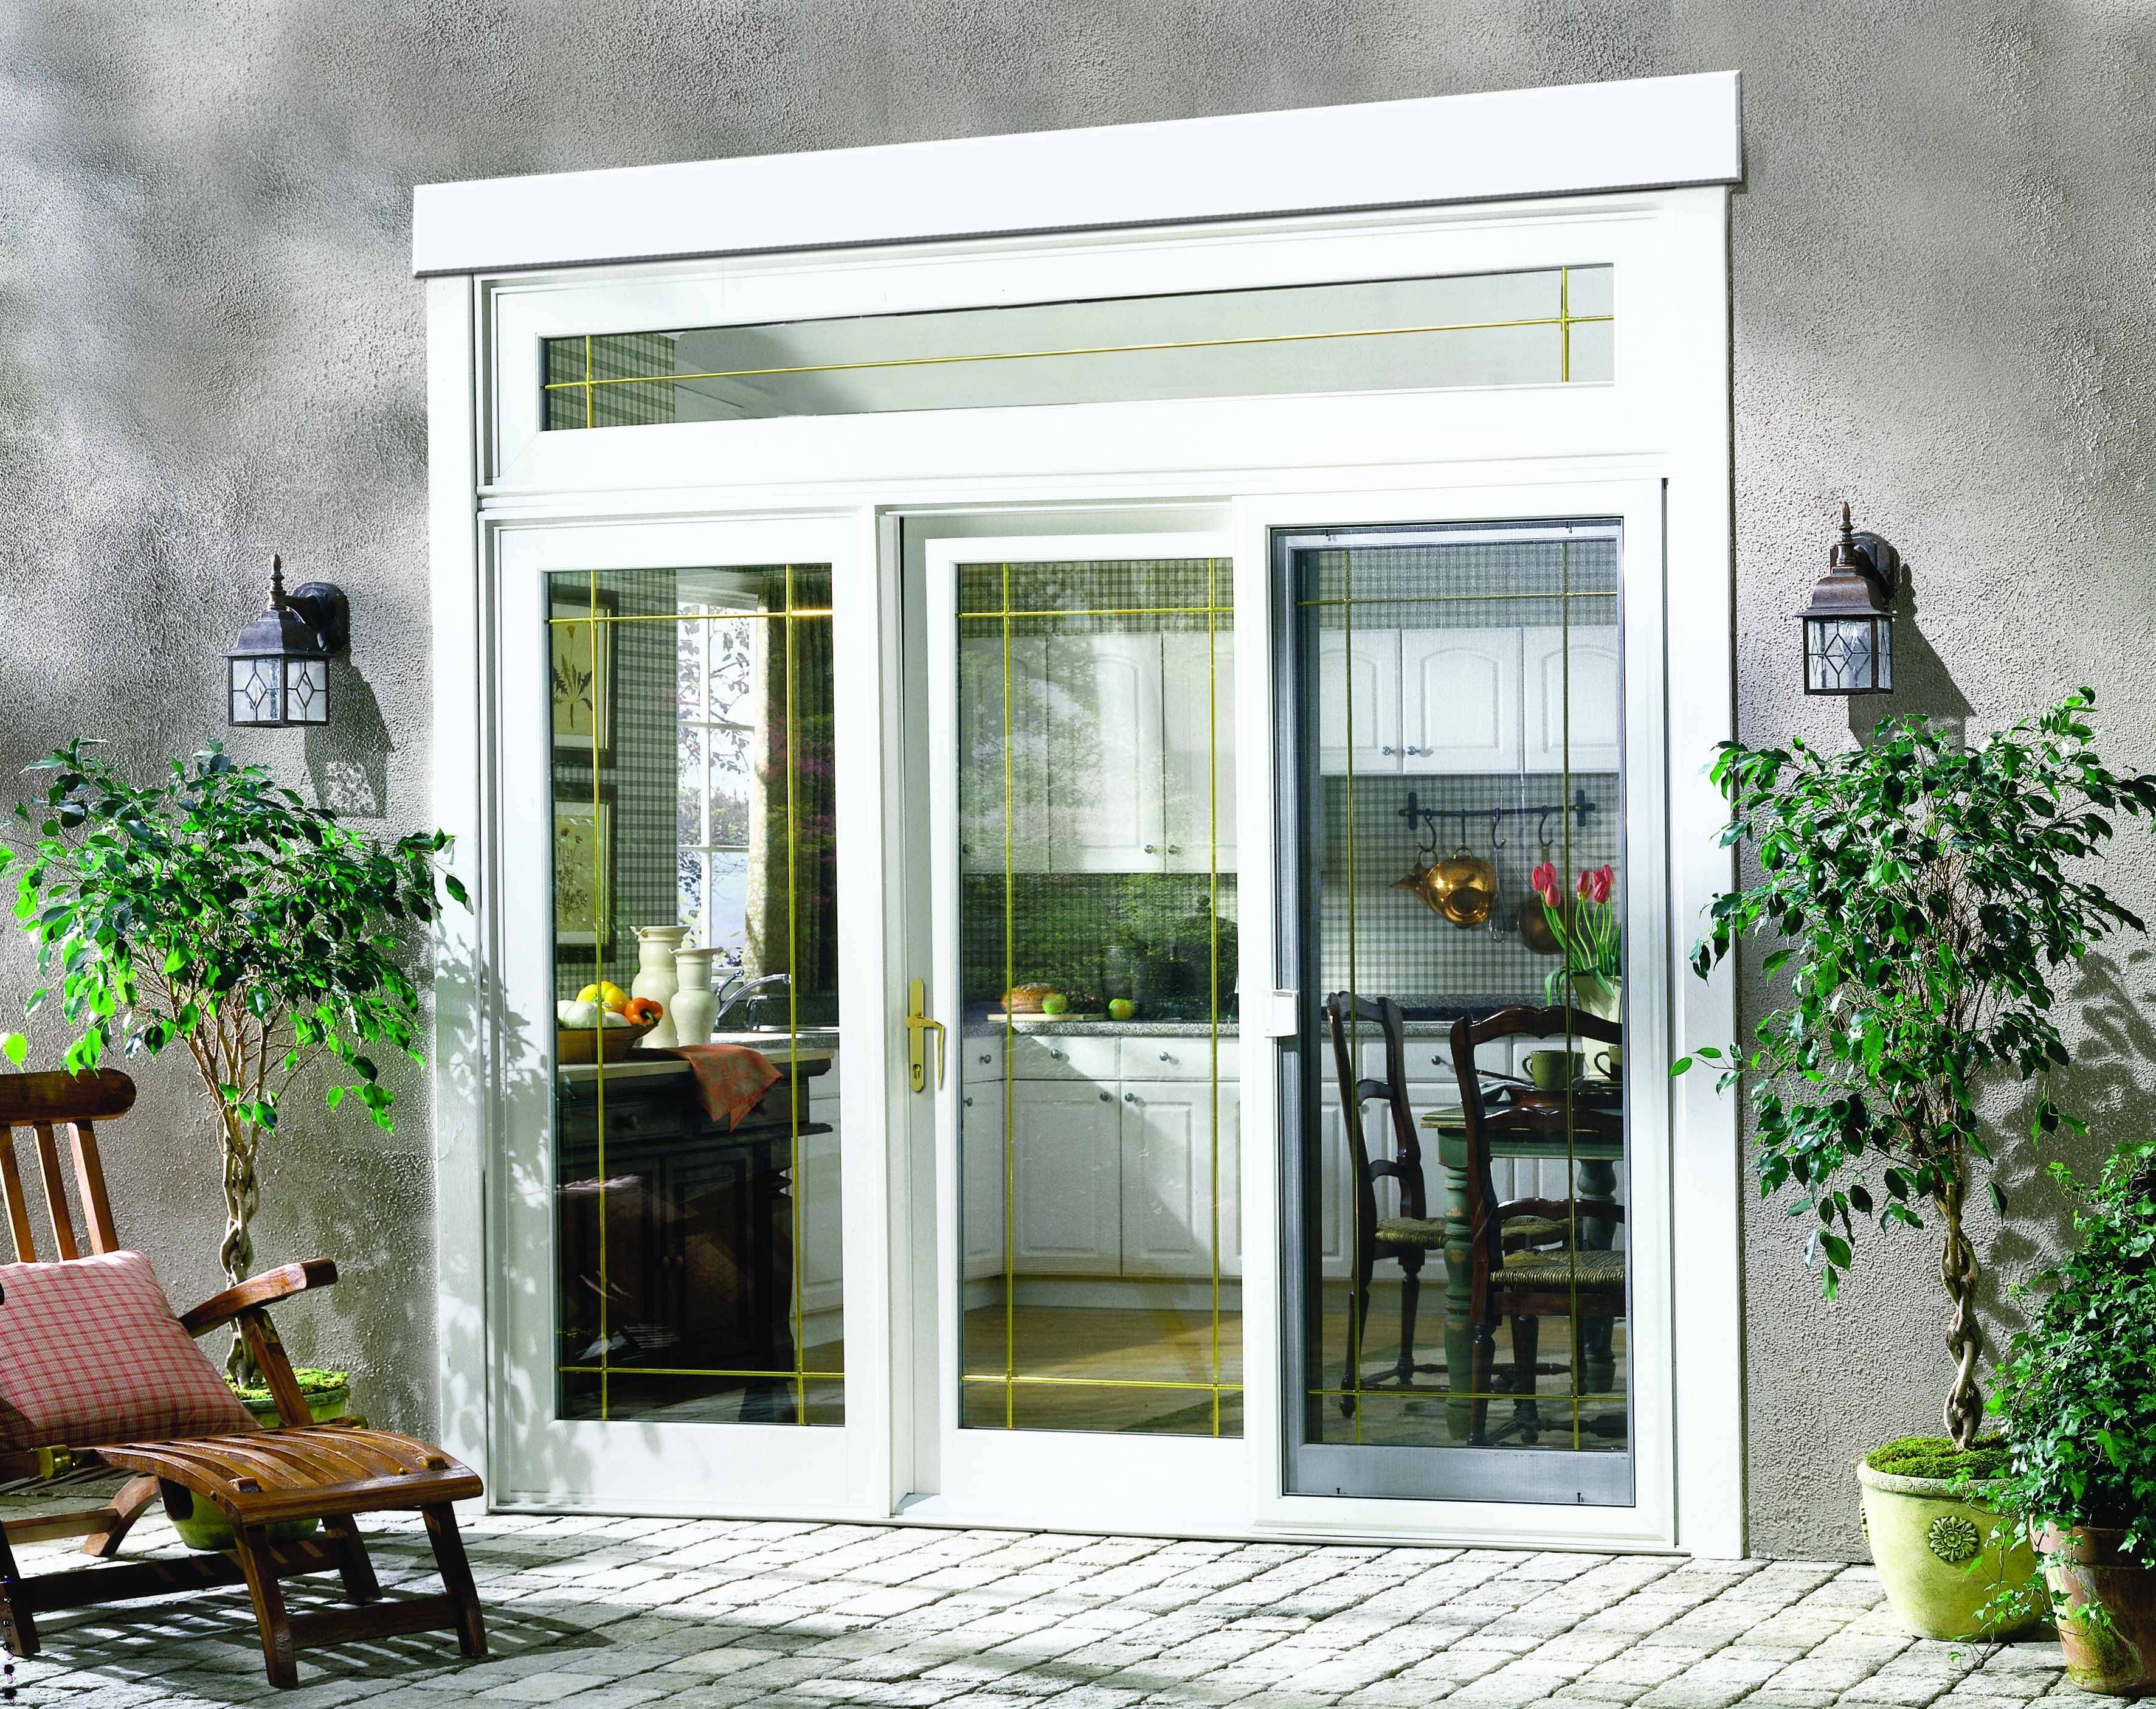 House design with sliding window  exterior patio door options  thefallguyediting